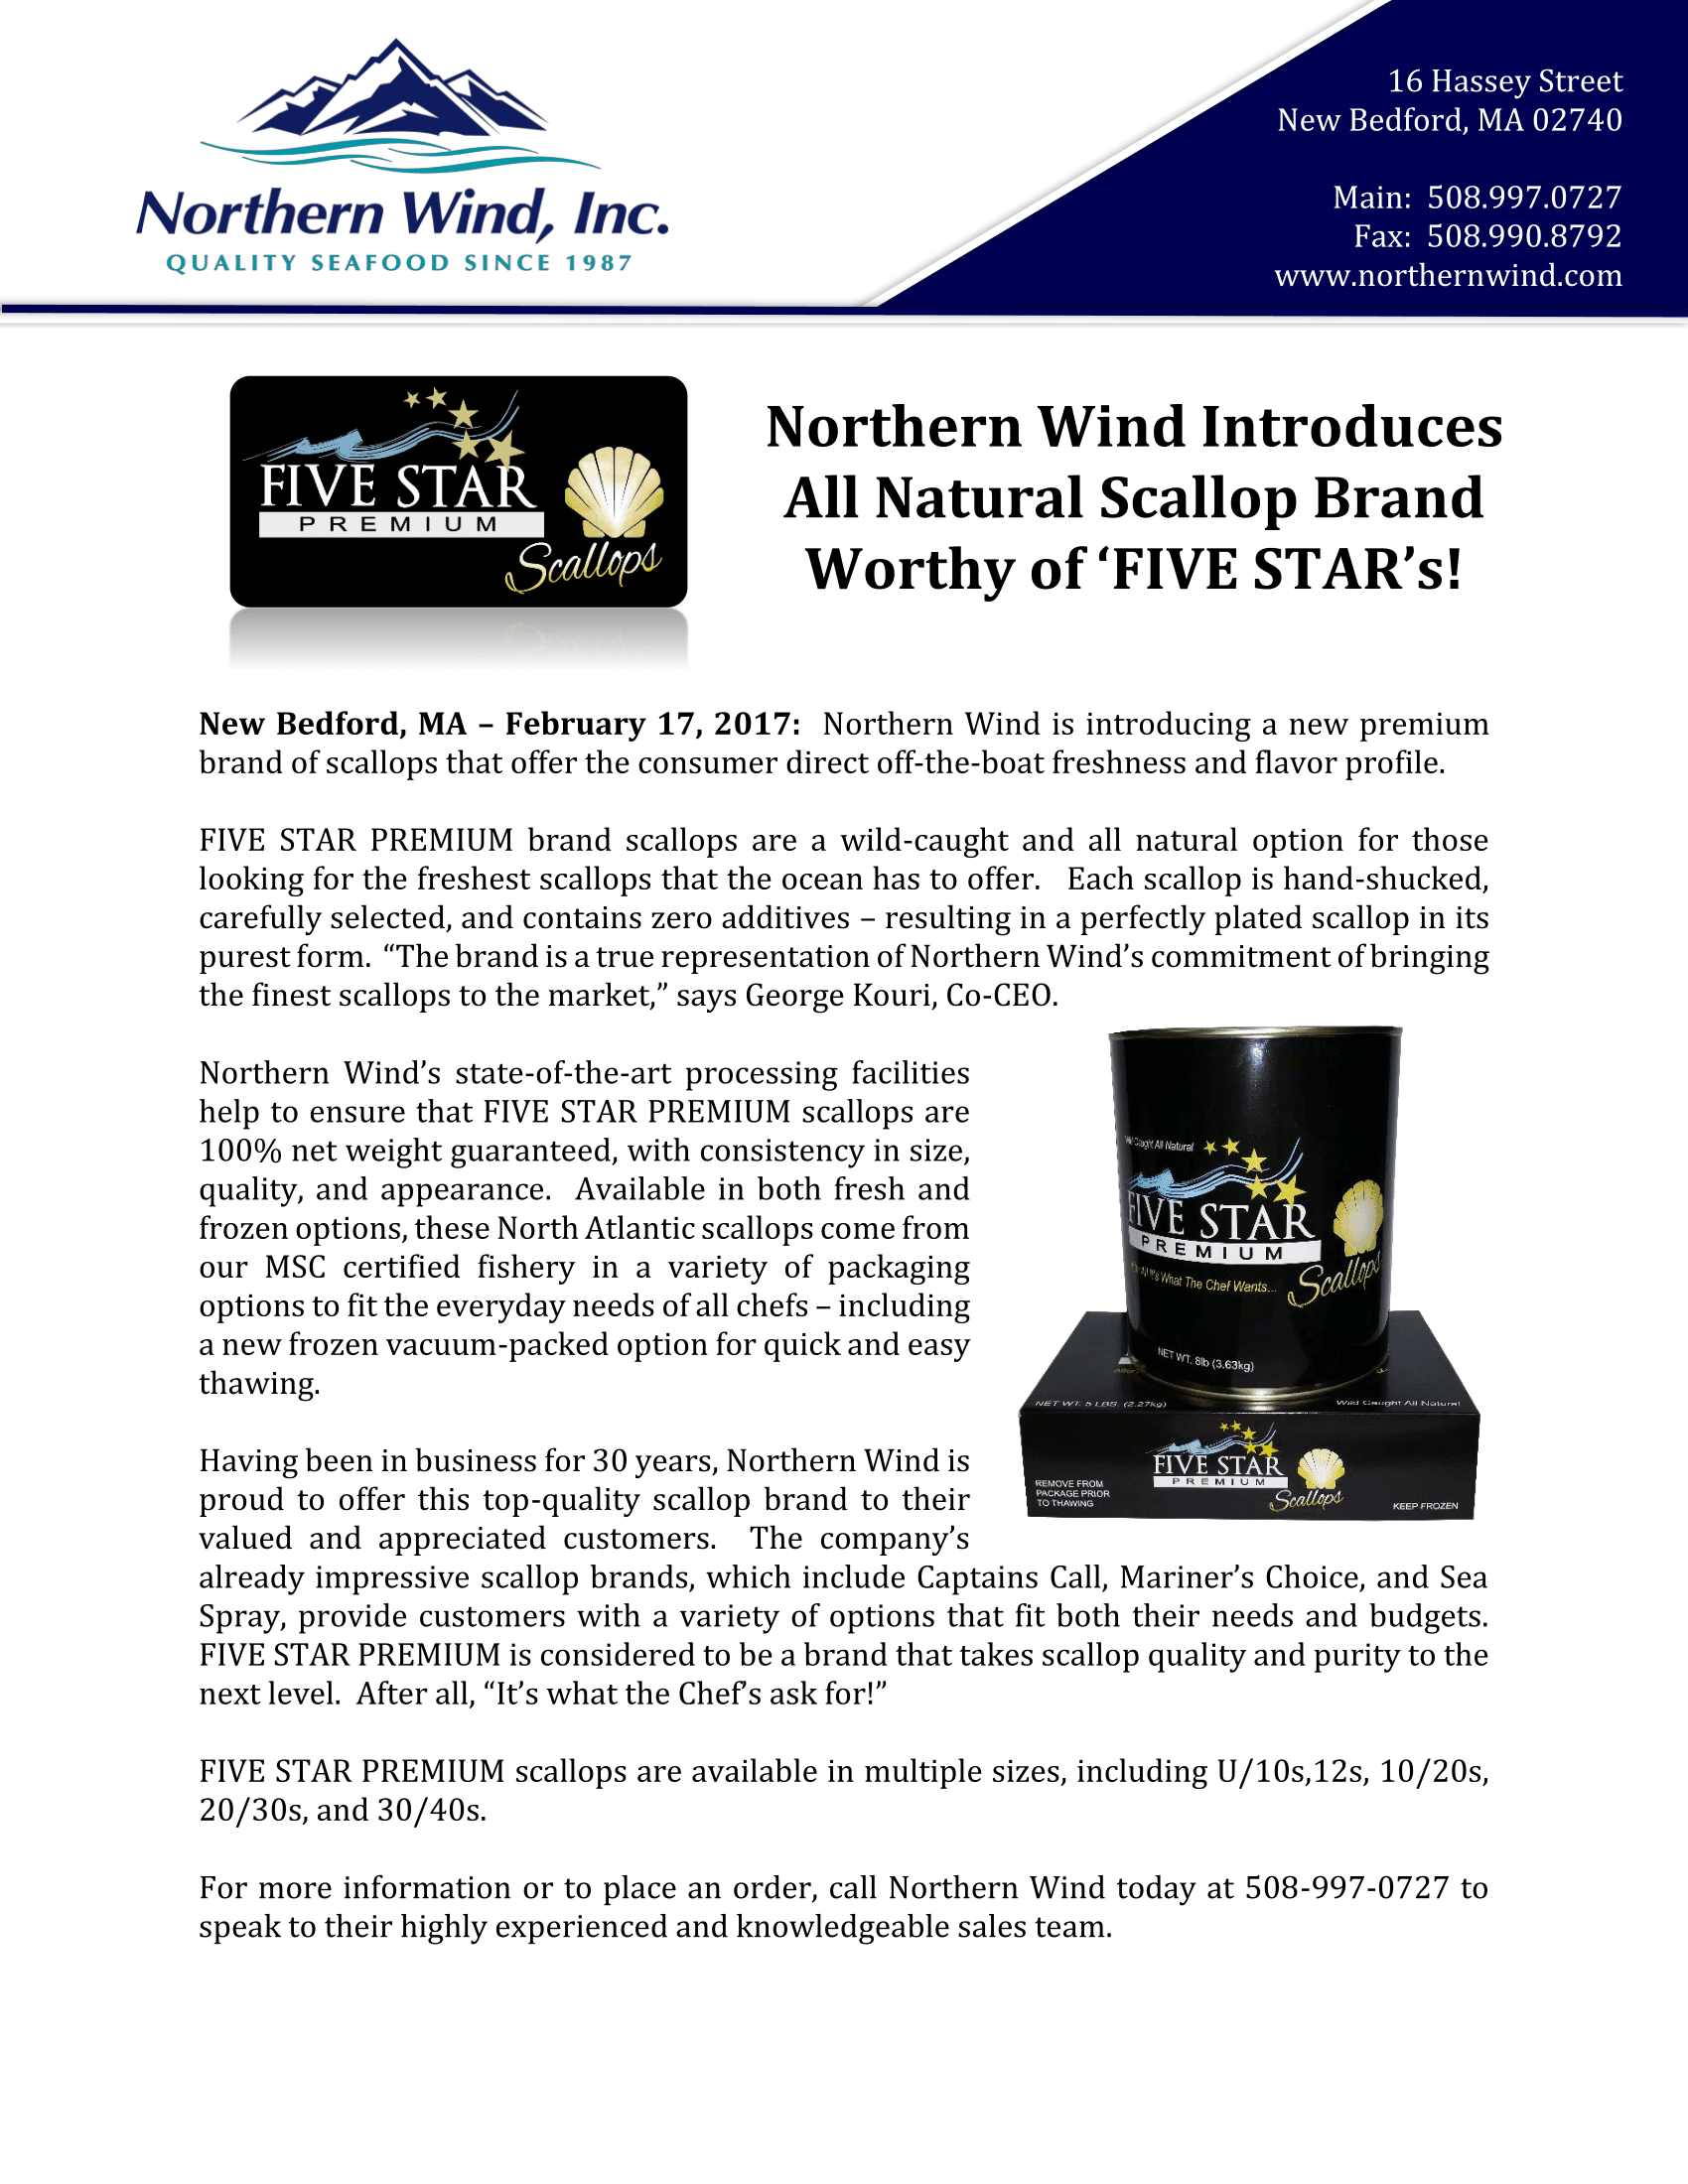 Five Star Premium Press Release_FINAL (Website).png